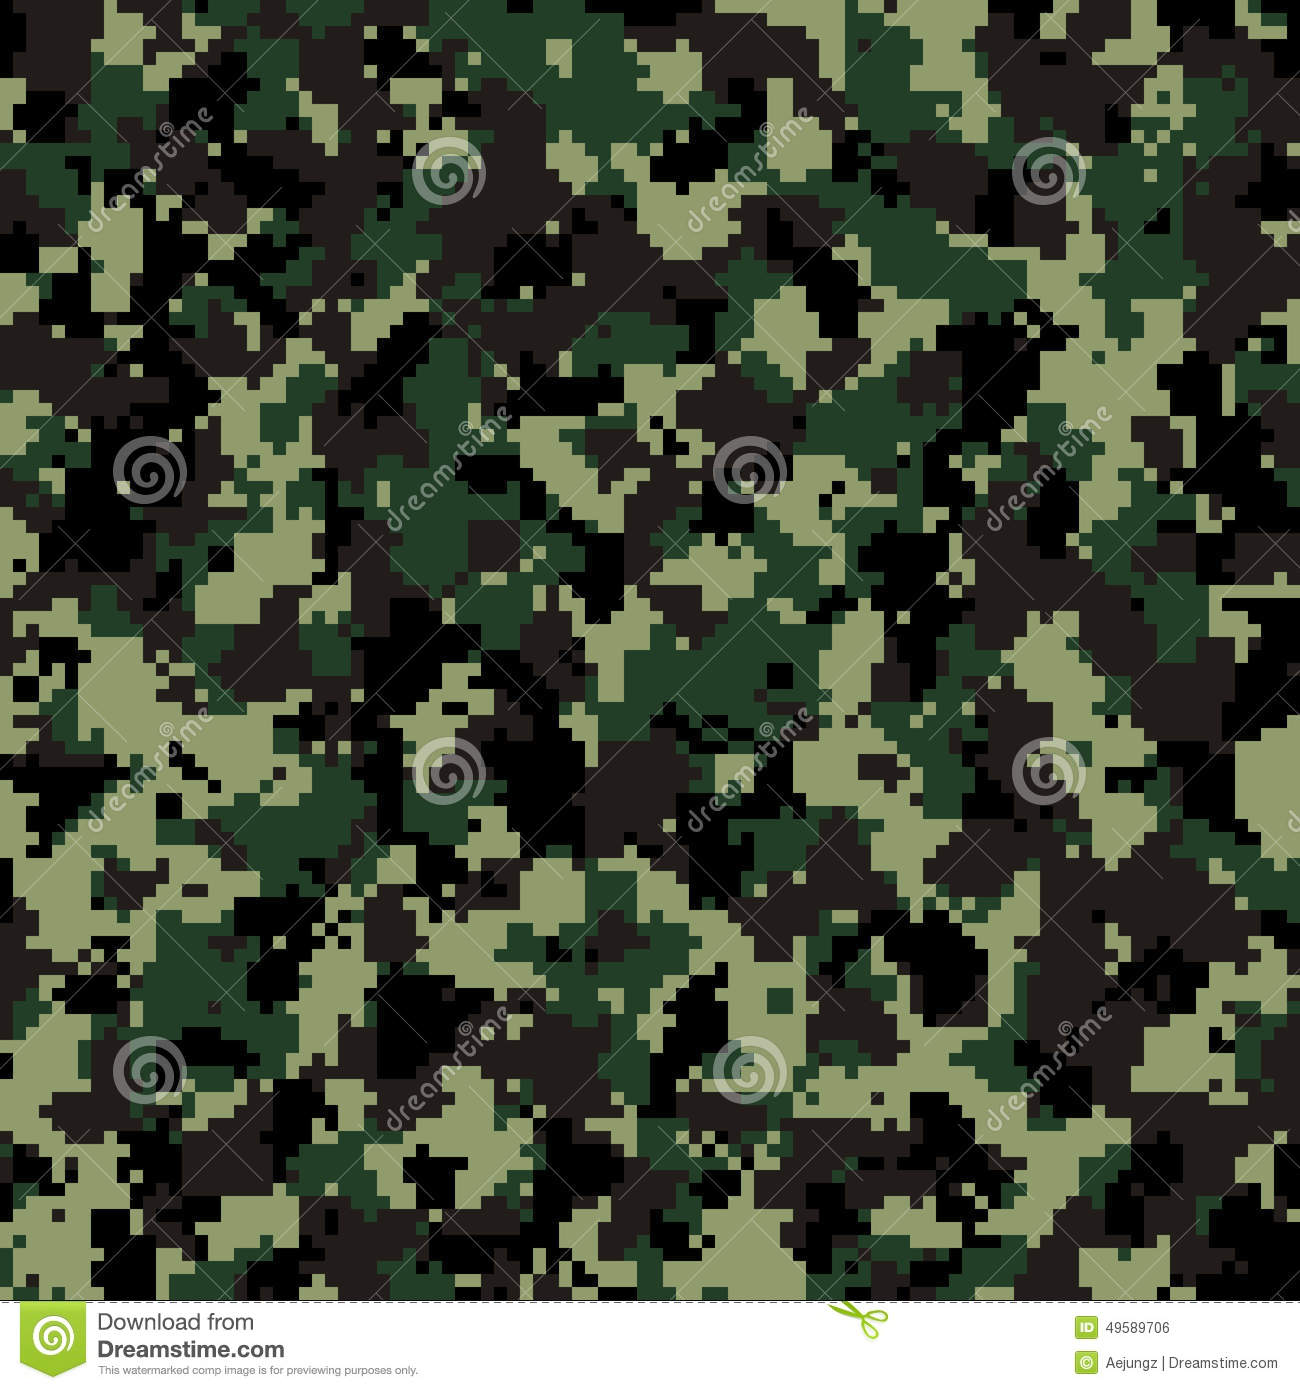 banco de jardim vetor : banco de jardim vetor:Imagem de Stock Royalty Free: Thai Army digital camouflage pattern